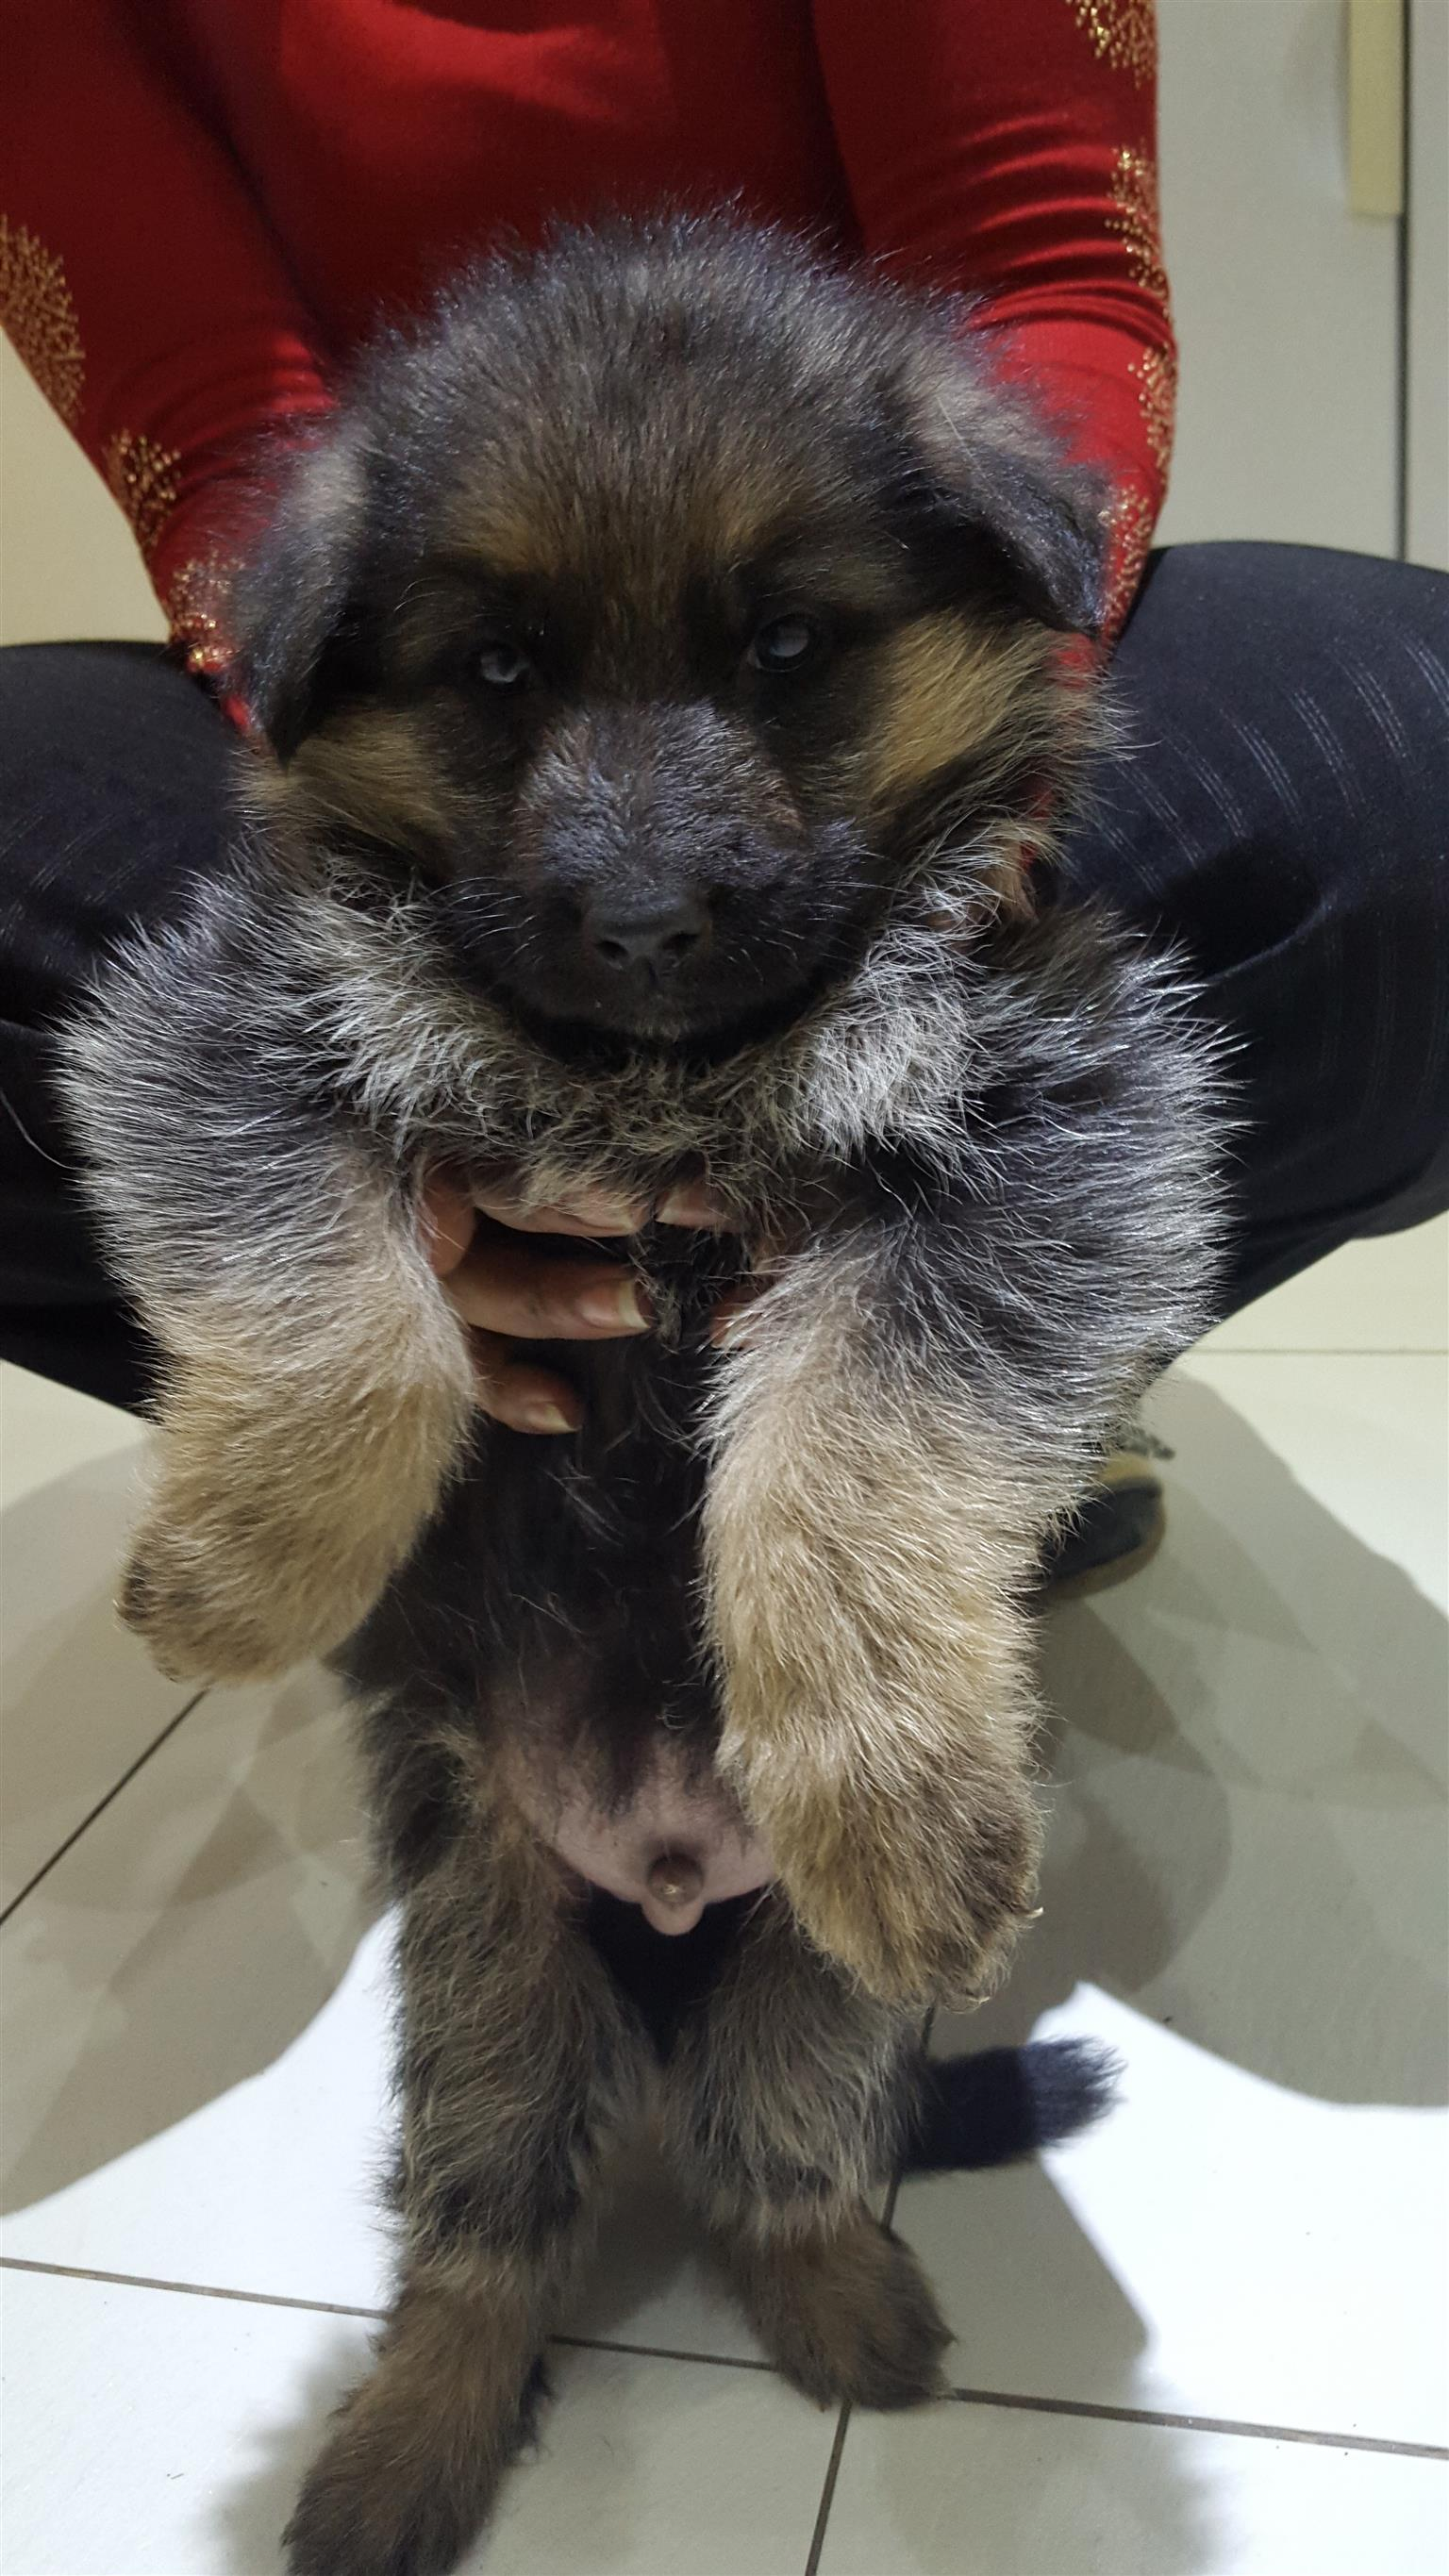 Pedigreed GSD puppies for sale, absolutely stunning and healthy